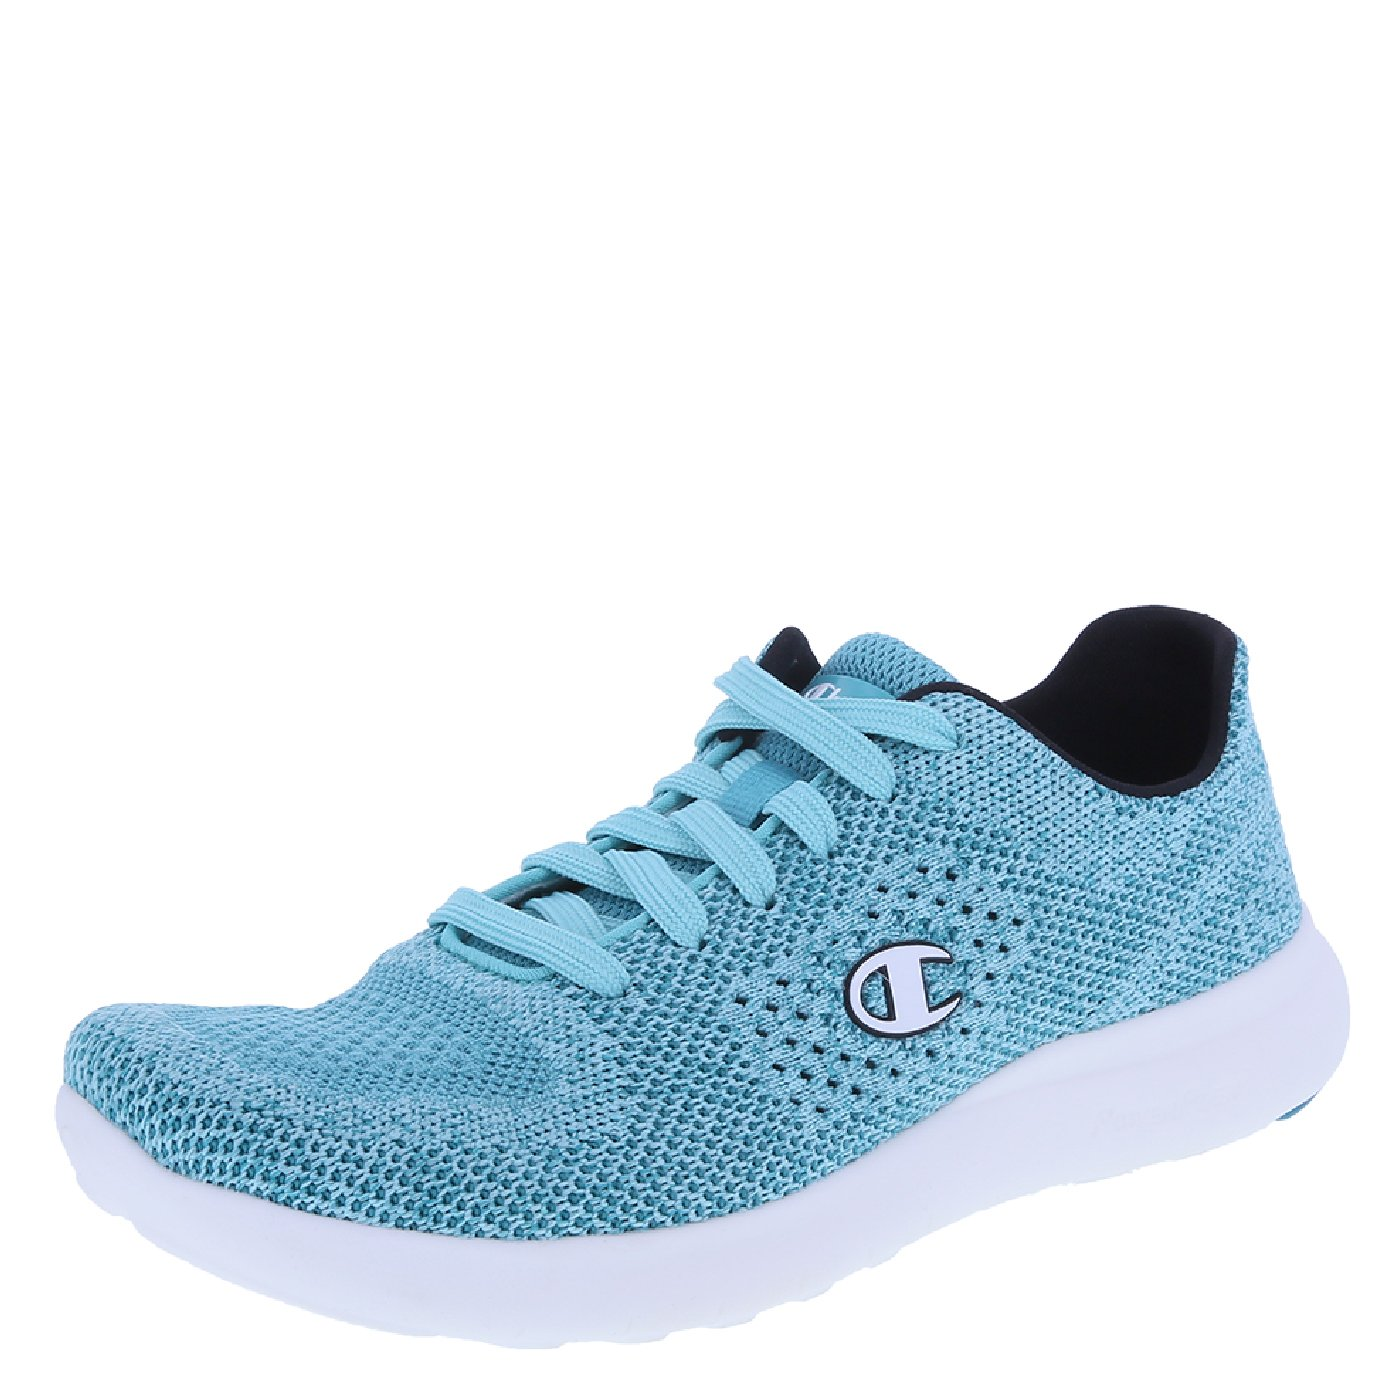 Champion Women's Activate Power Knit Runner B076CXJLMT 8.5 B(M) US|Mint